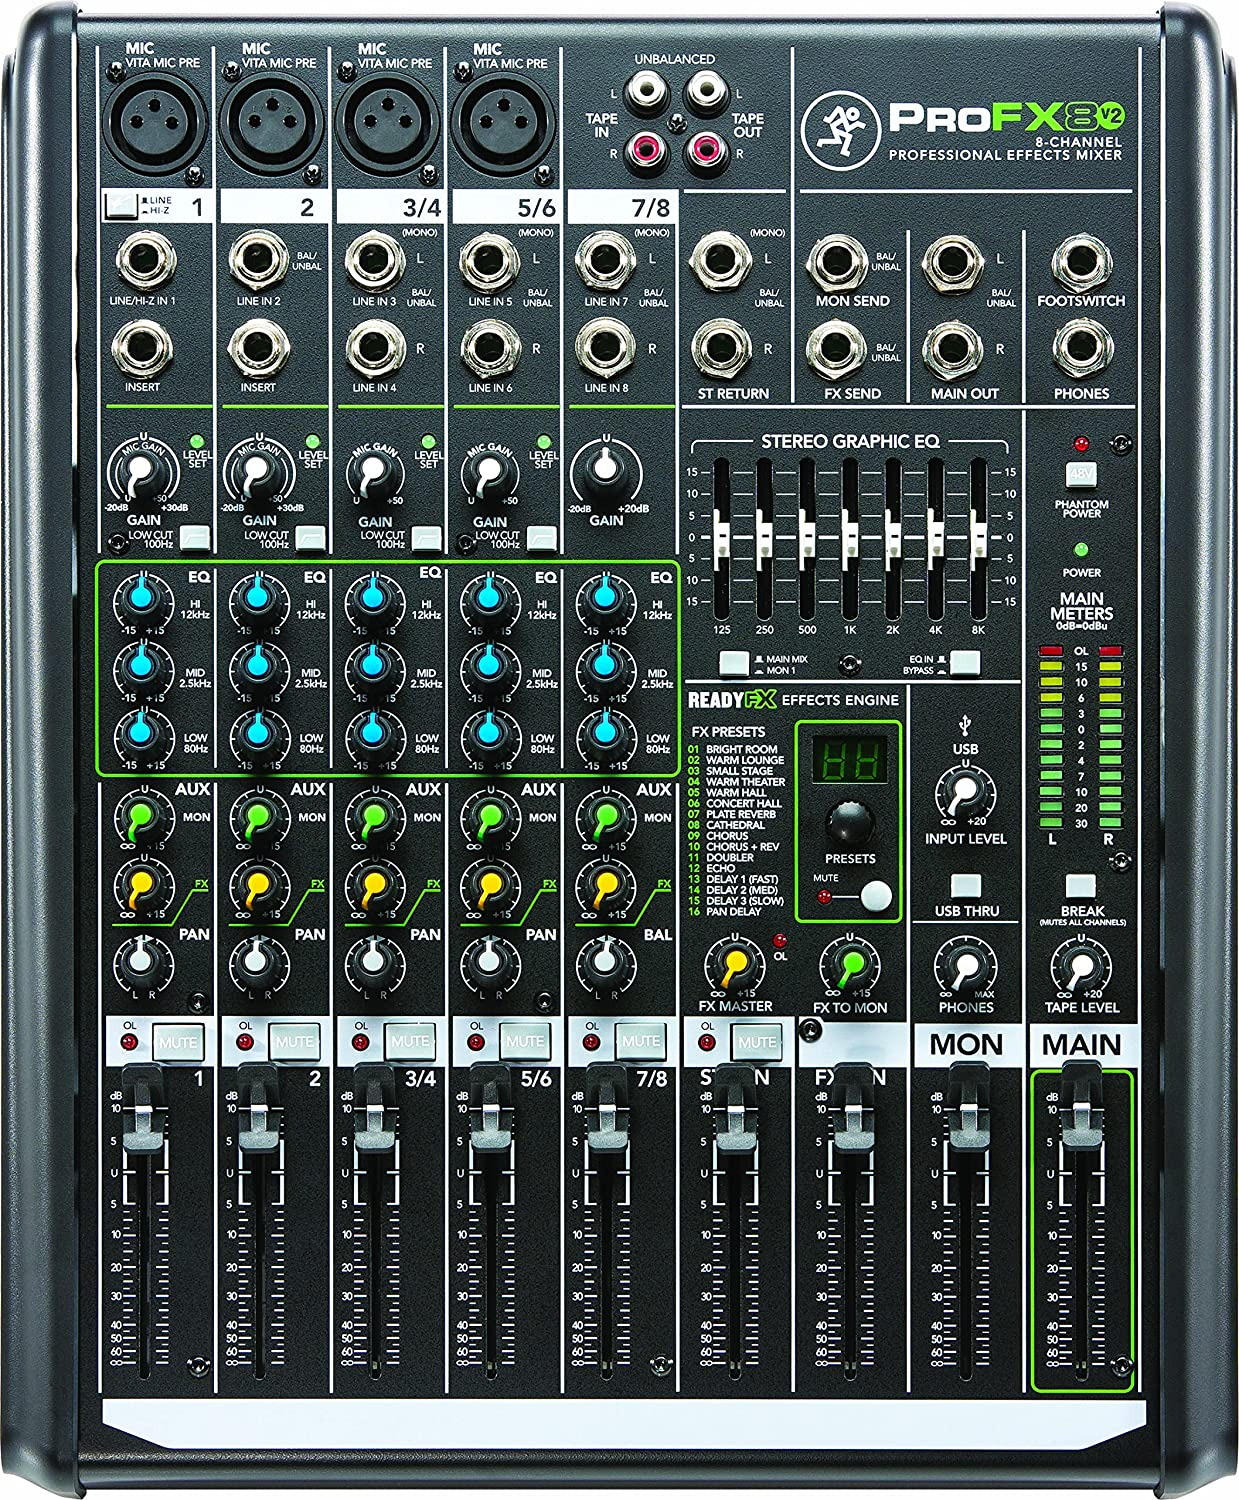 Mackie Profx8v2 8 Channel Compact Mixer With Usb And Audio Mixers Projects Circuits 7 Effects Musical Instruments